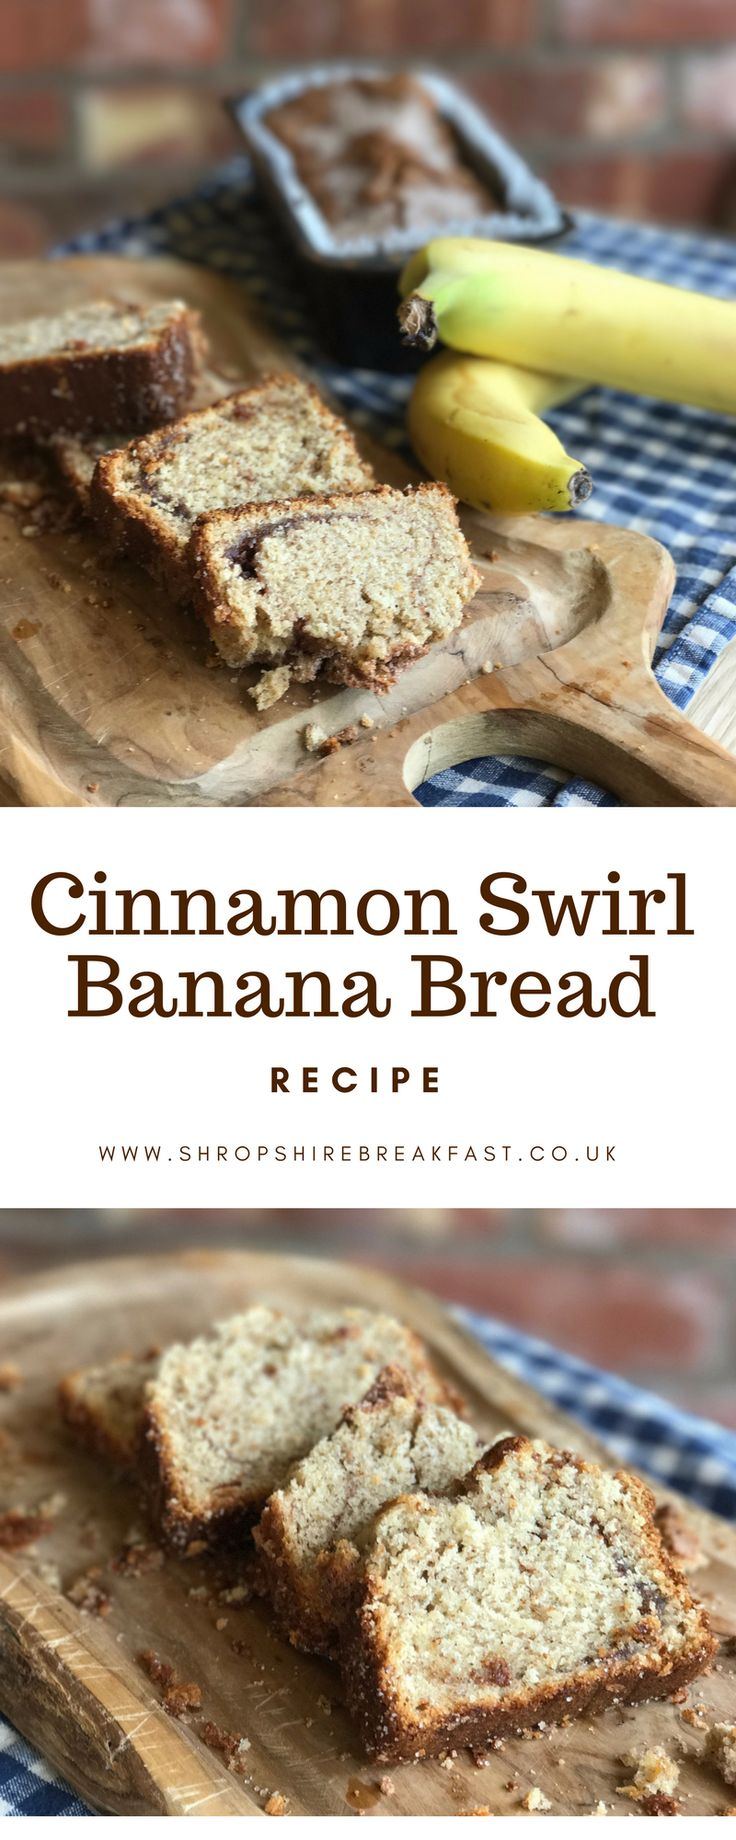 An easy cinnamon swirl banana bread recipe. It's moist and delicious and easy to adapt to make it gluten free or with no refined sugar